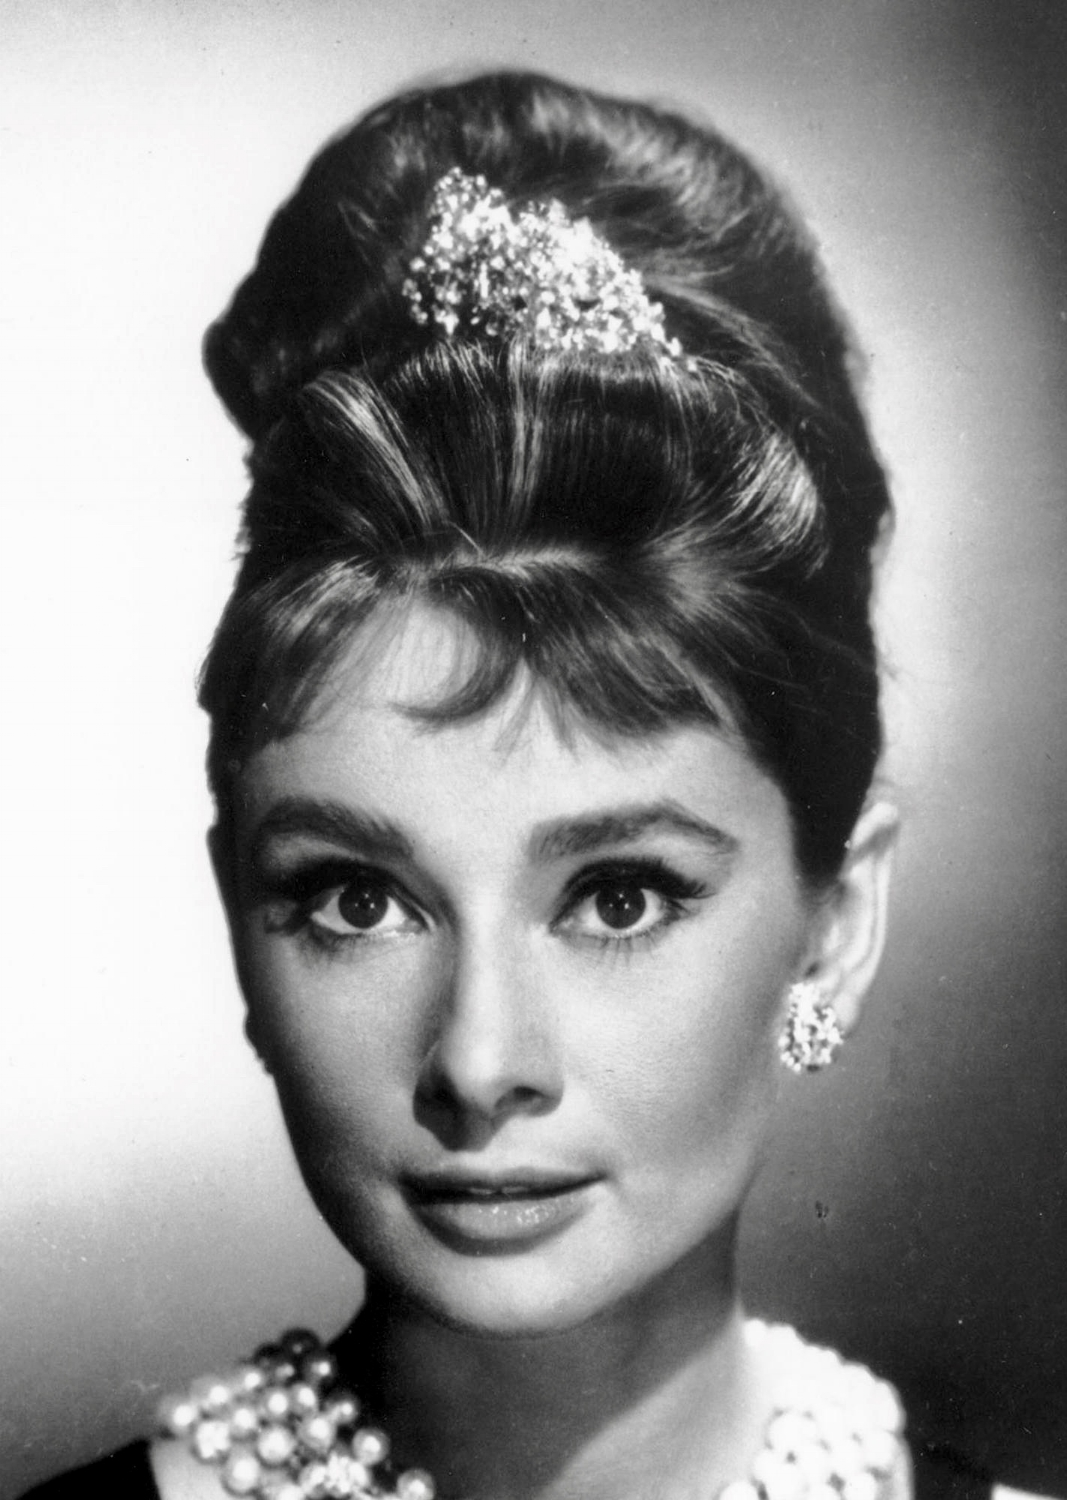 Audrey Hepburn pictured as Holly Golightly in the 1961 movie  Breakfast at Tiffany's